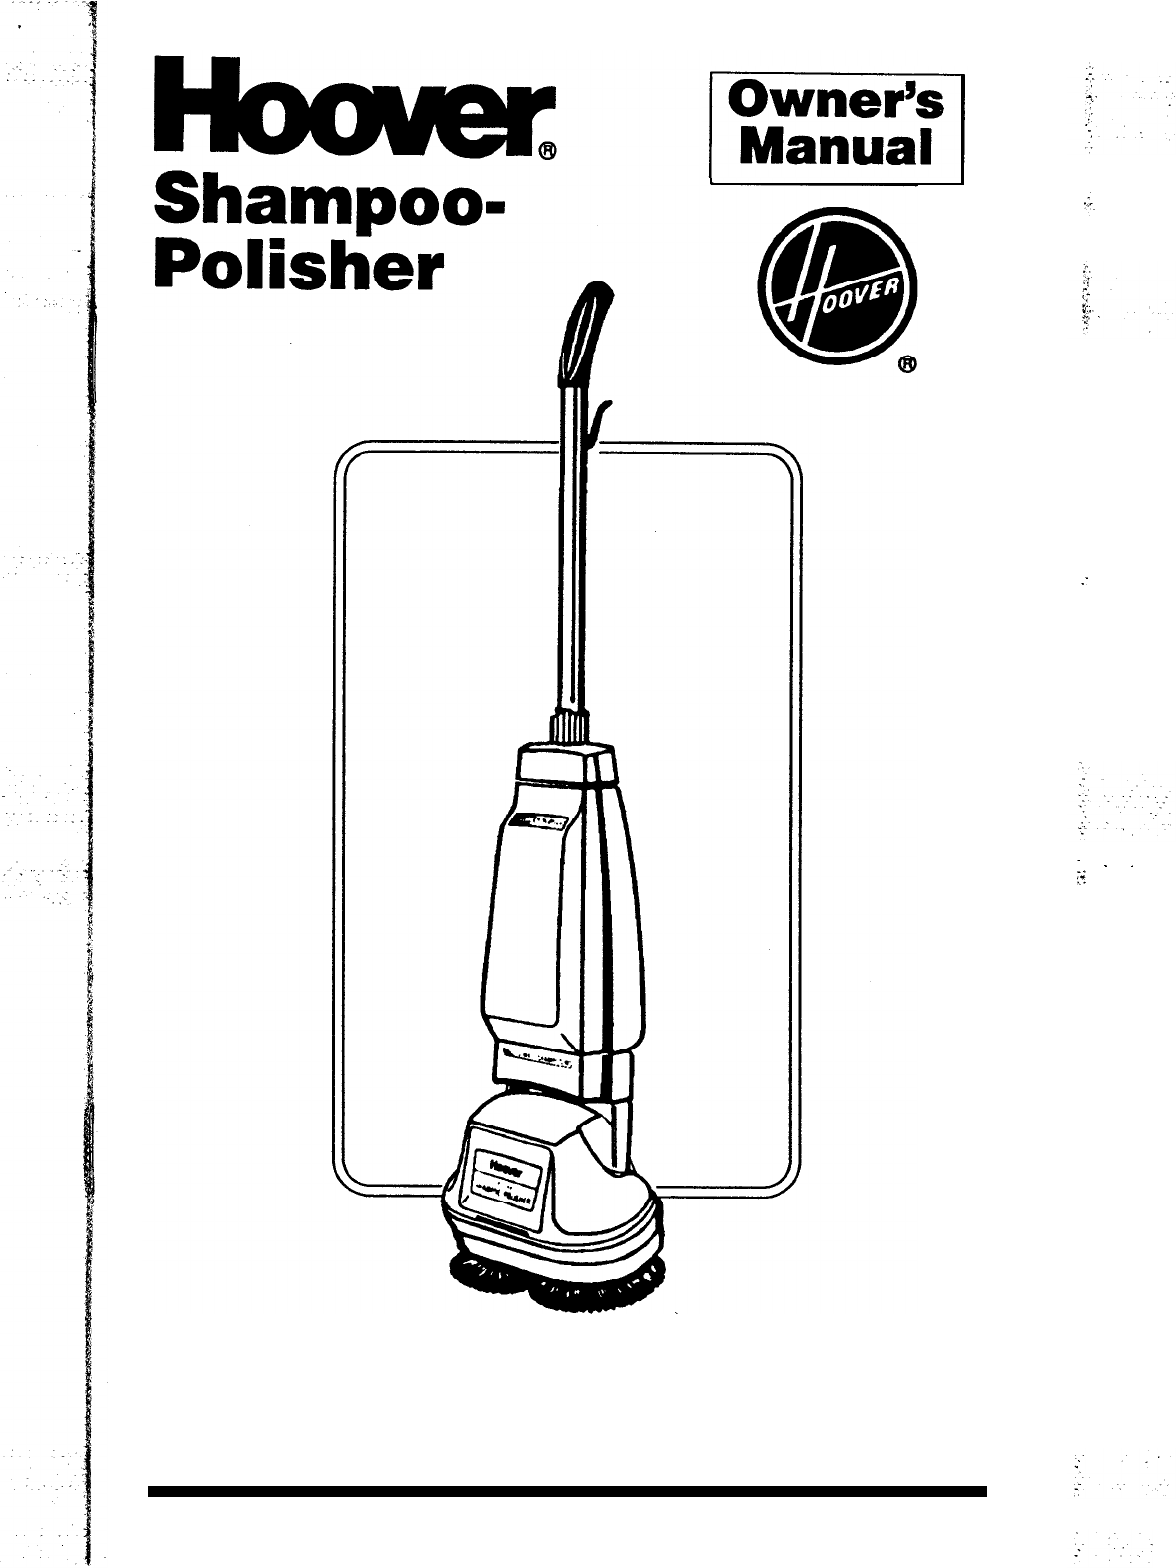 Hoover Carpet Cleaner Shampoo-Polisher User Guide